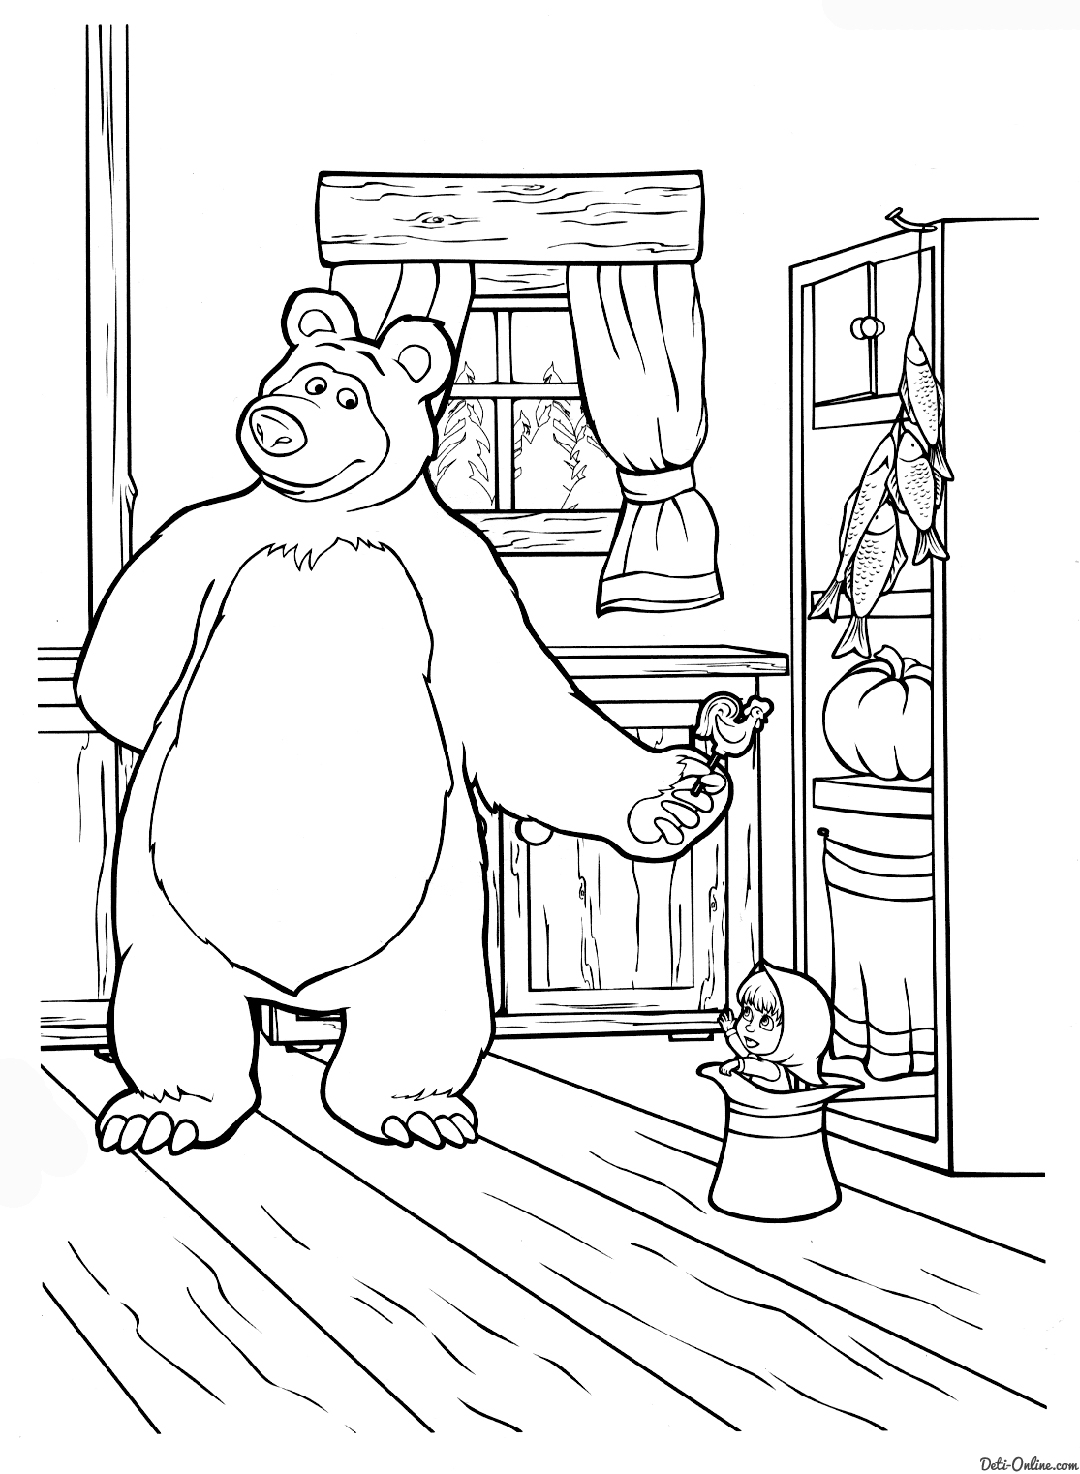 Masha And The Bear Coloring Pageprintablecoloring Pages